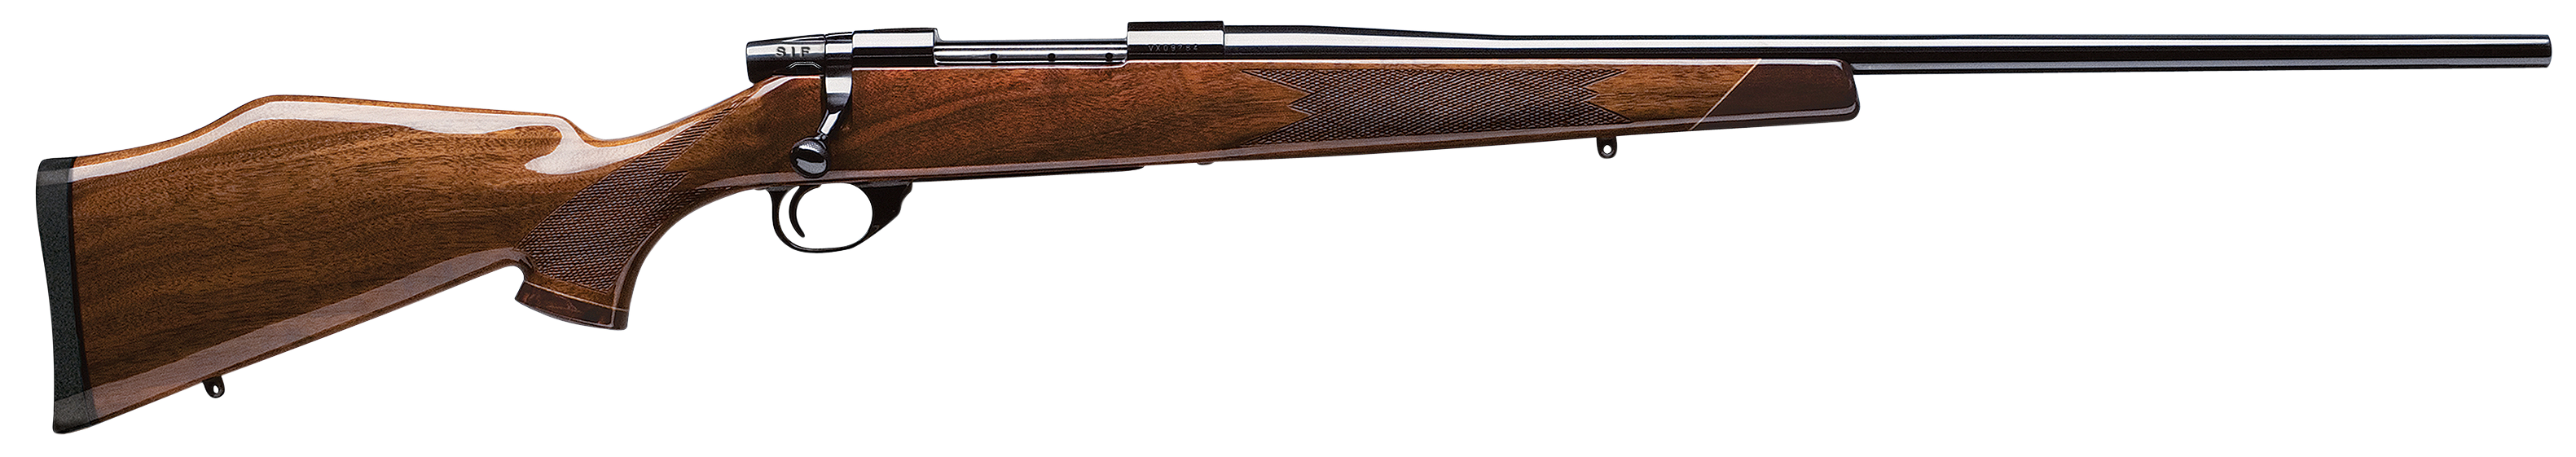 Weatherby Vanguard Deluxe 300 Wby Mag 26